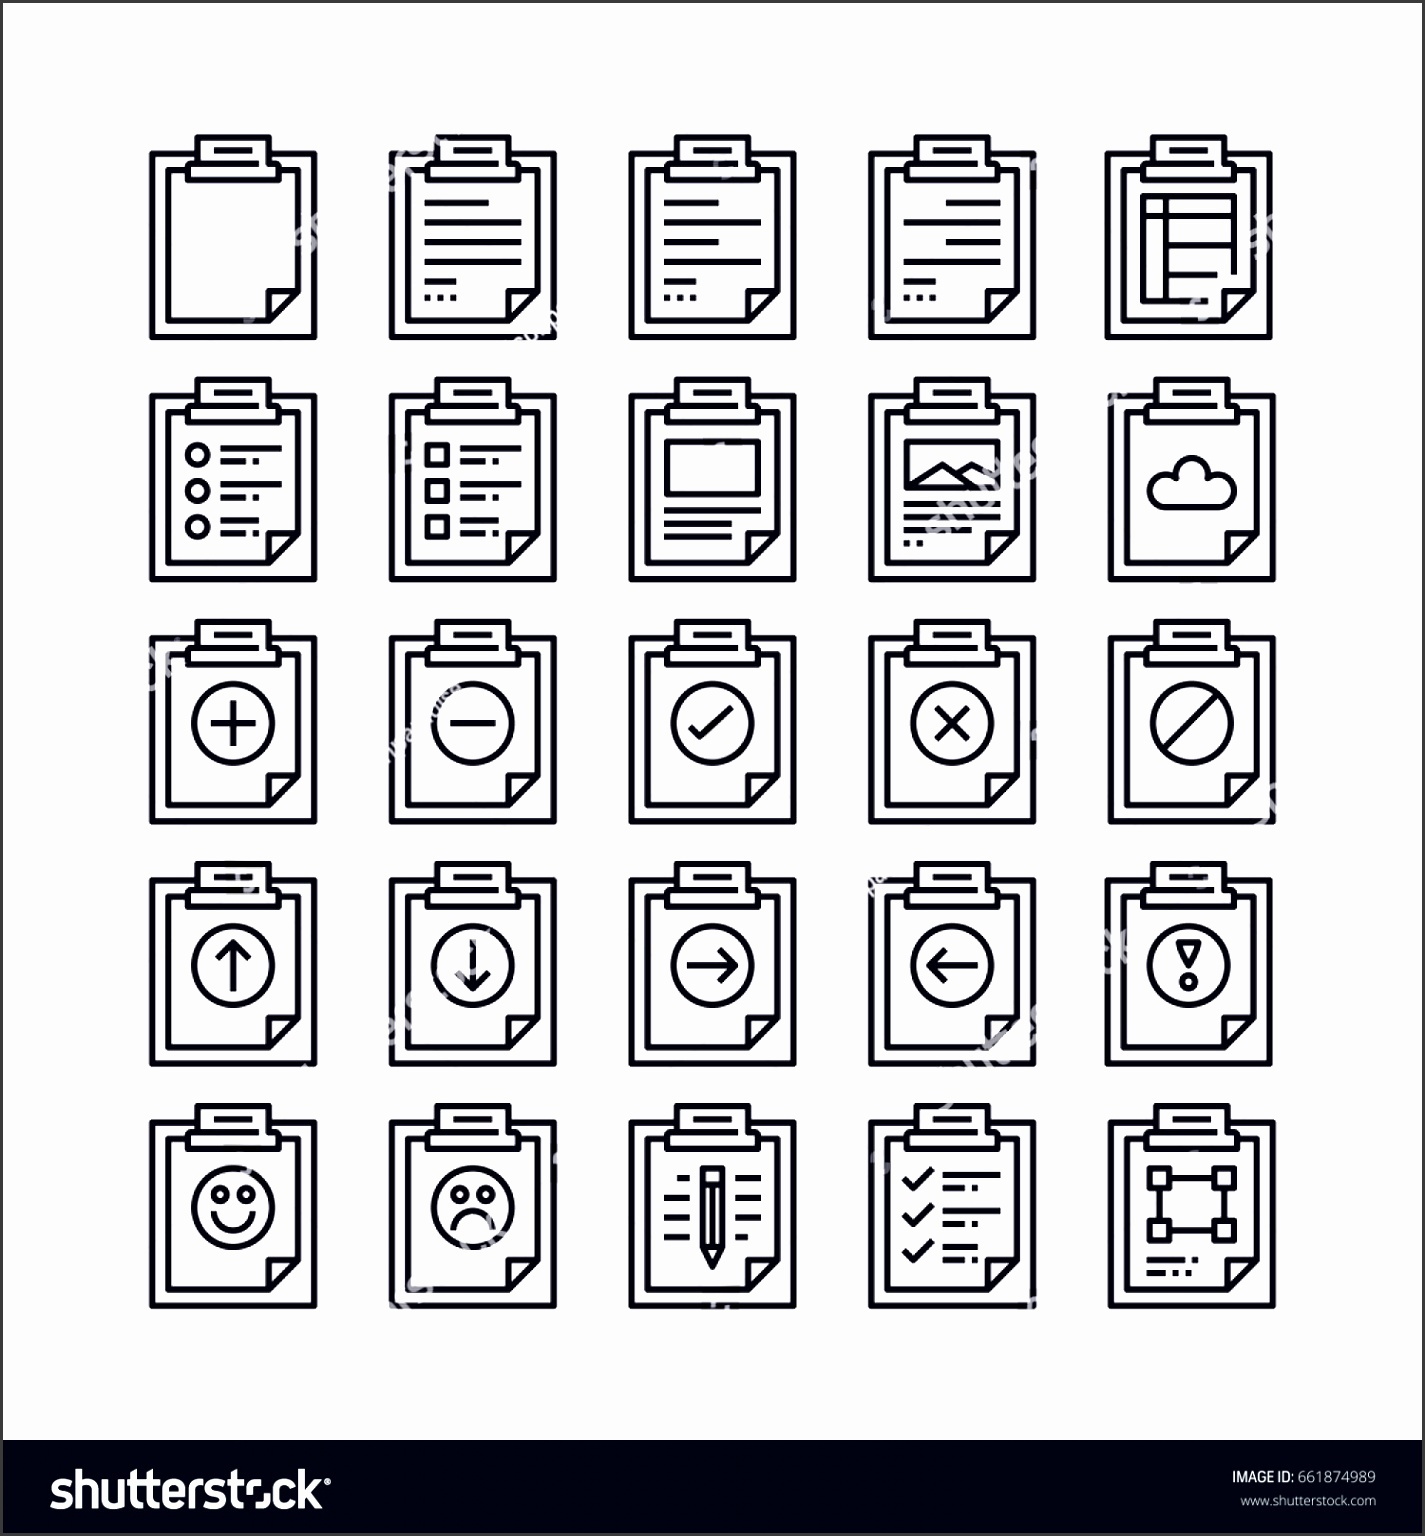 set of clipboard outline icon design all icon designed on 64x64 pixel perfect icon